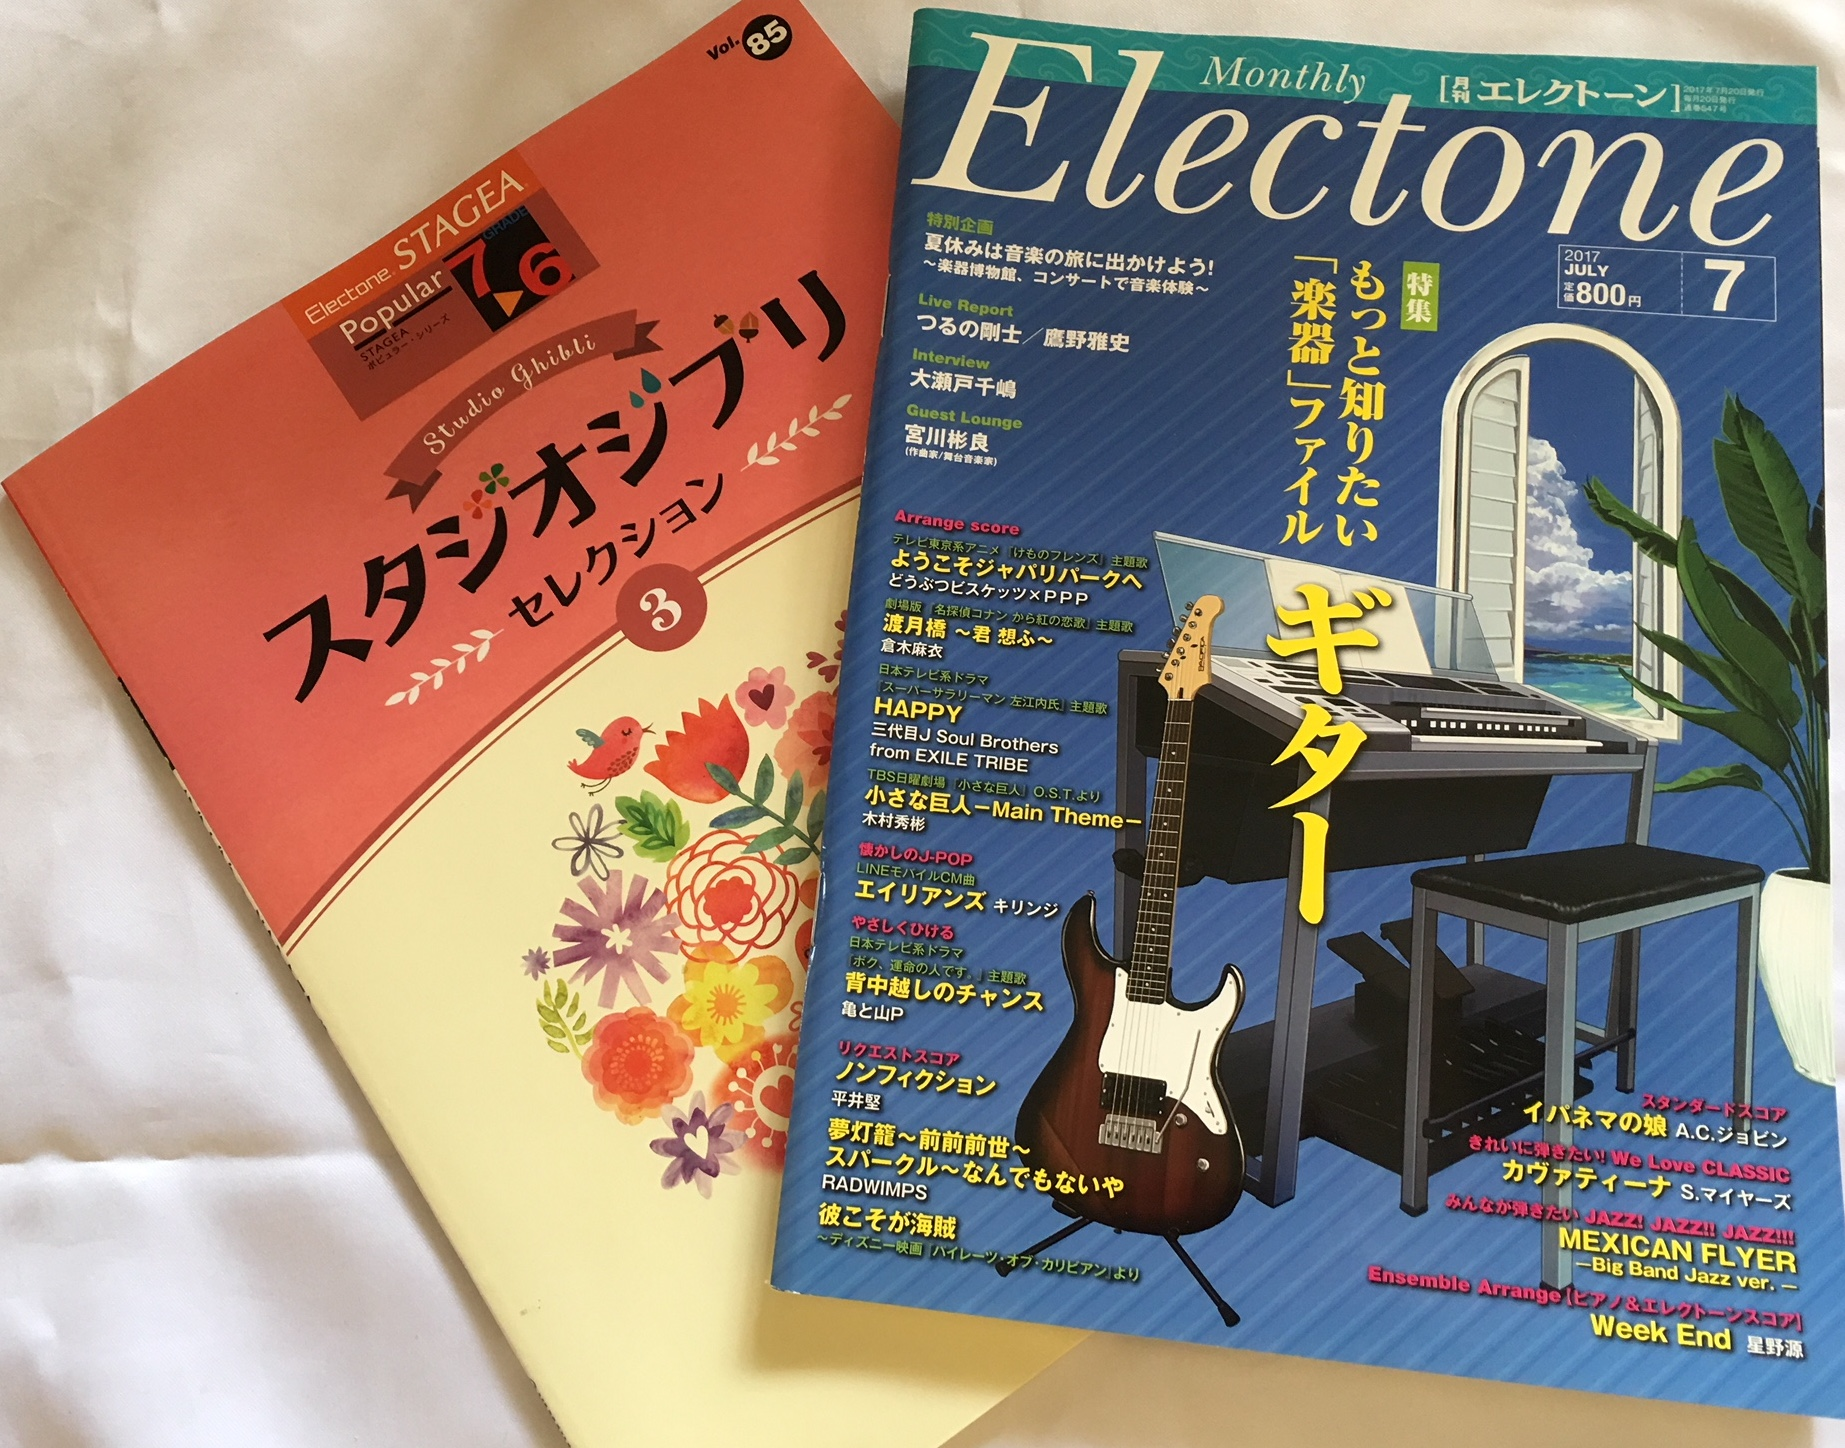 Taro S Trade Japan 12th July 2018 We Dispatched 2 Electone Books